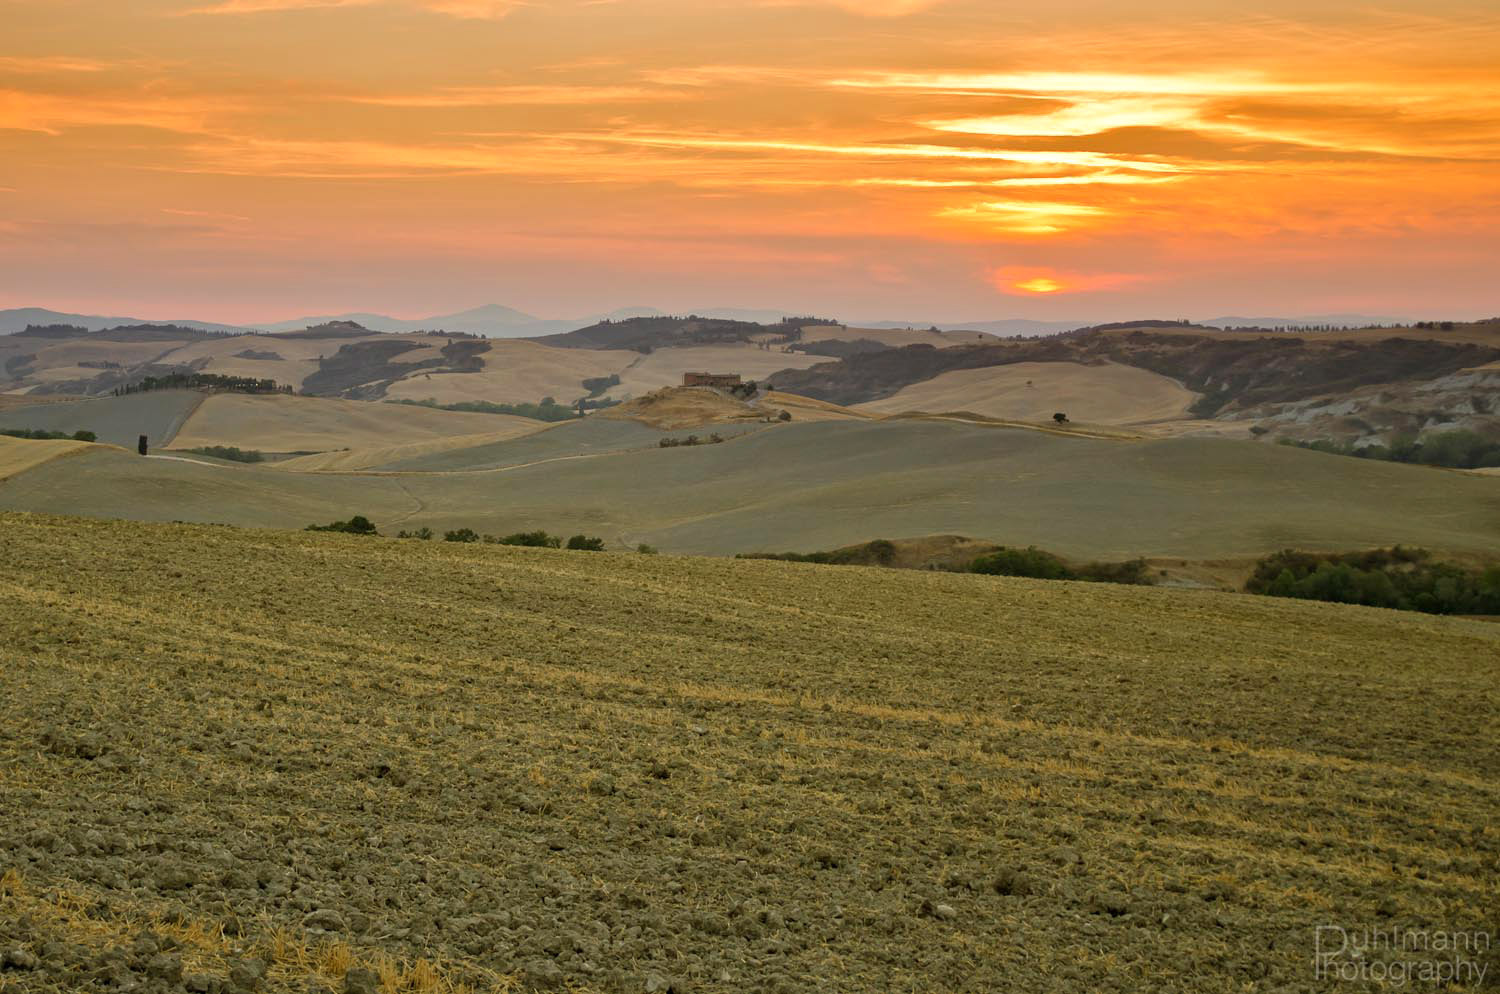 Photograph Sunset in Tuscany by Claus Puhlmann on 500px